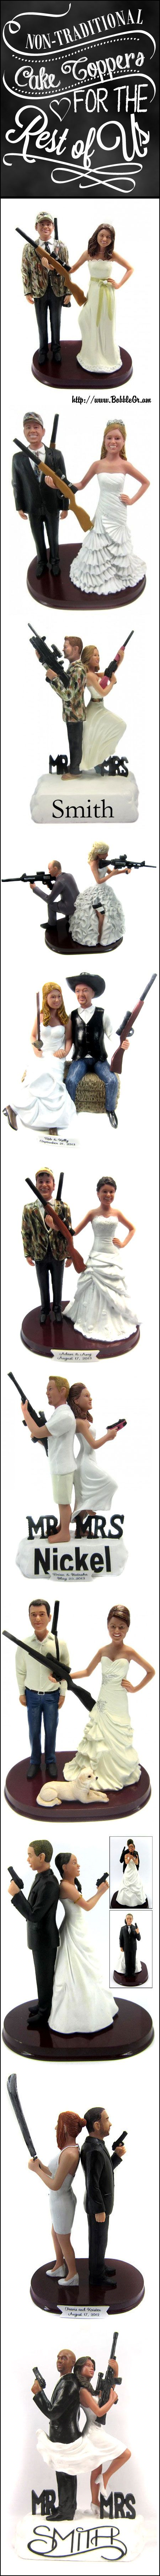 Let BobbleGr.am create a one-of-a-kind hunting themed cake topper complete with your choice of camouflage pattern - sculpted to look like the bride and groom!